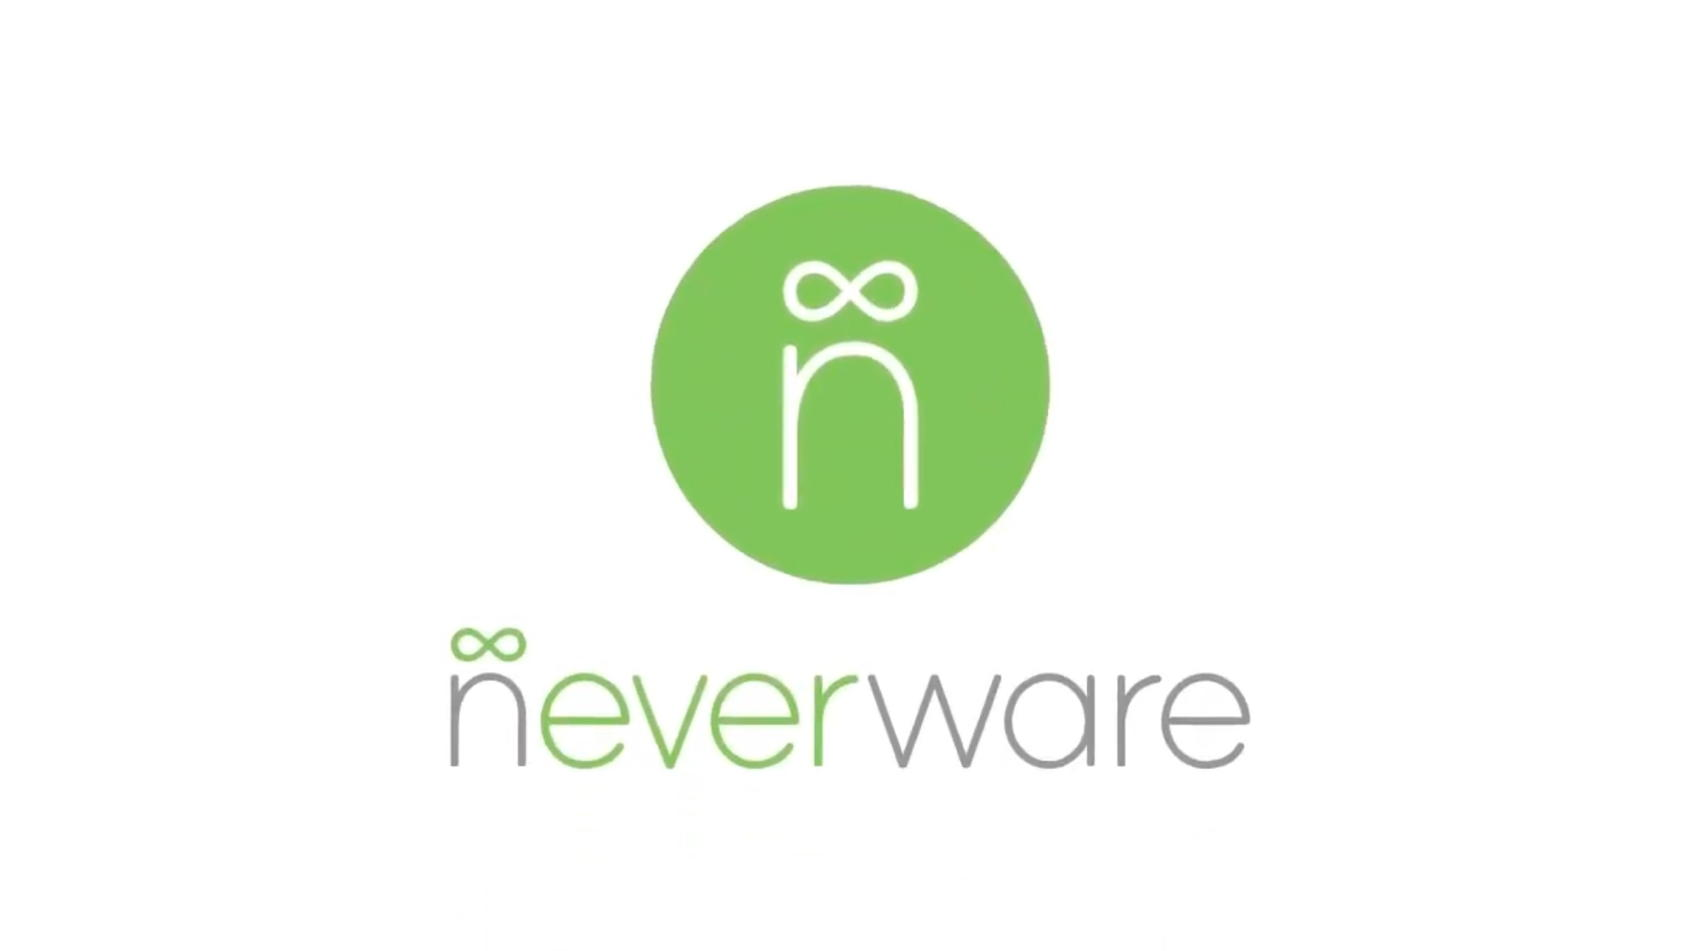 Neverware